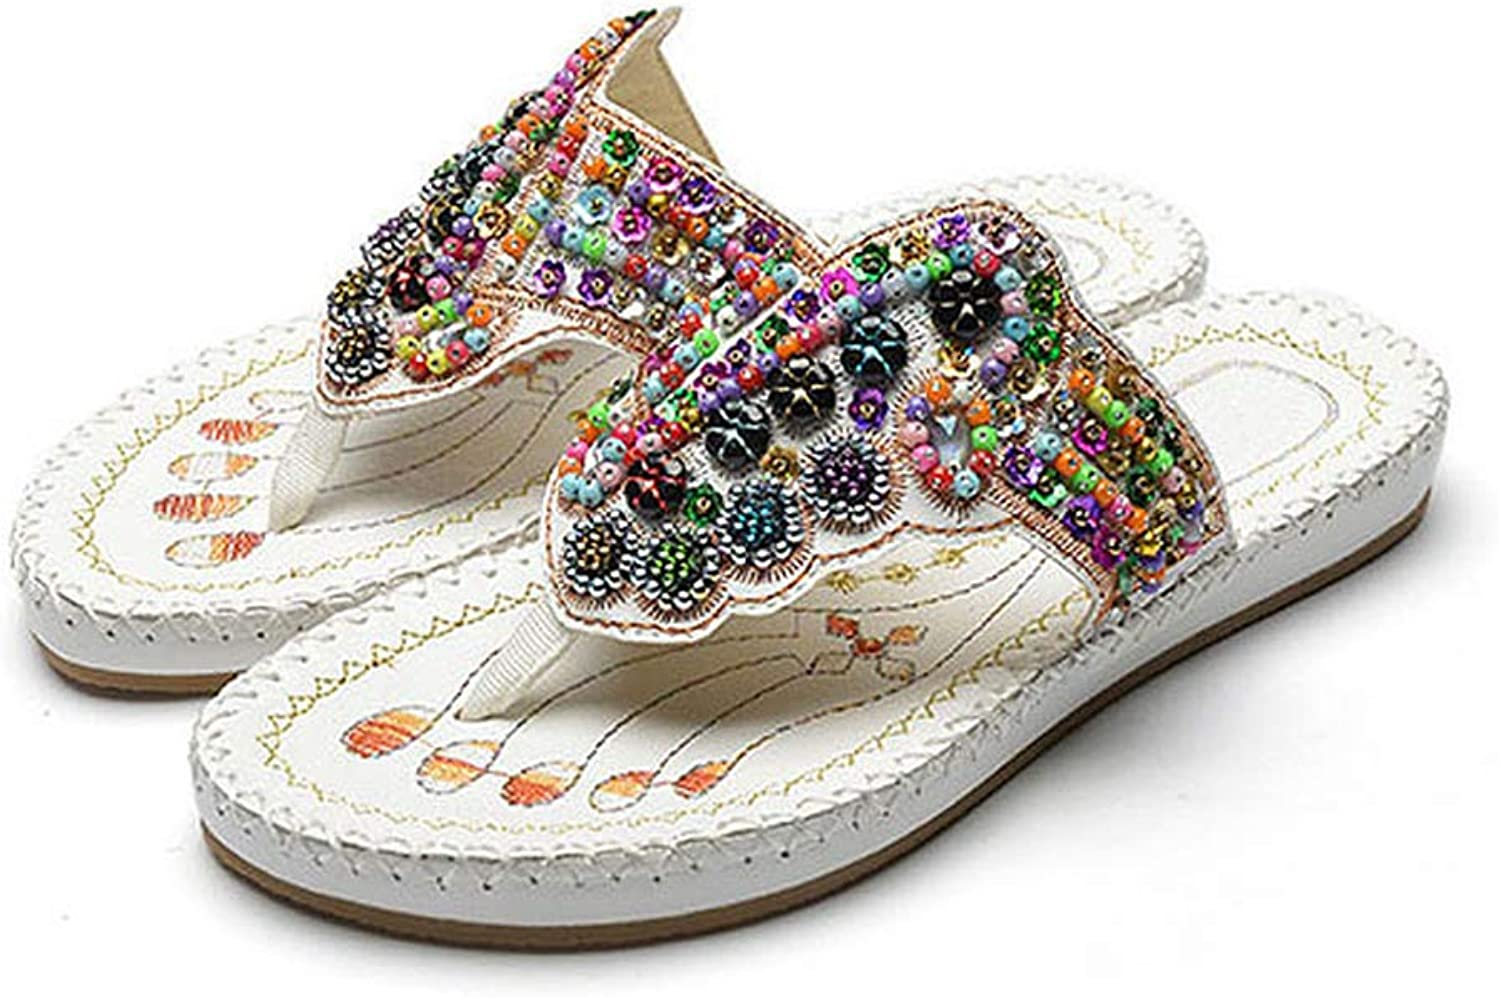 Hoxekle Woman Retro Bling String Beads Bohemian Slide Flatform Flat Flip Flops Casual Antislip Outdoor colorful Sandals